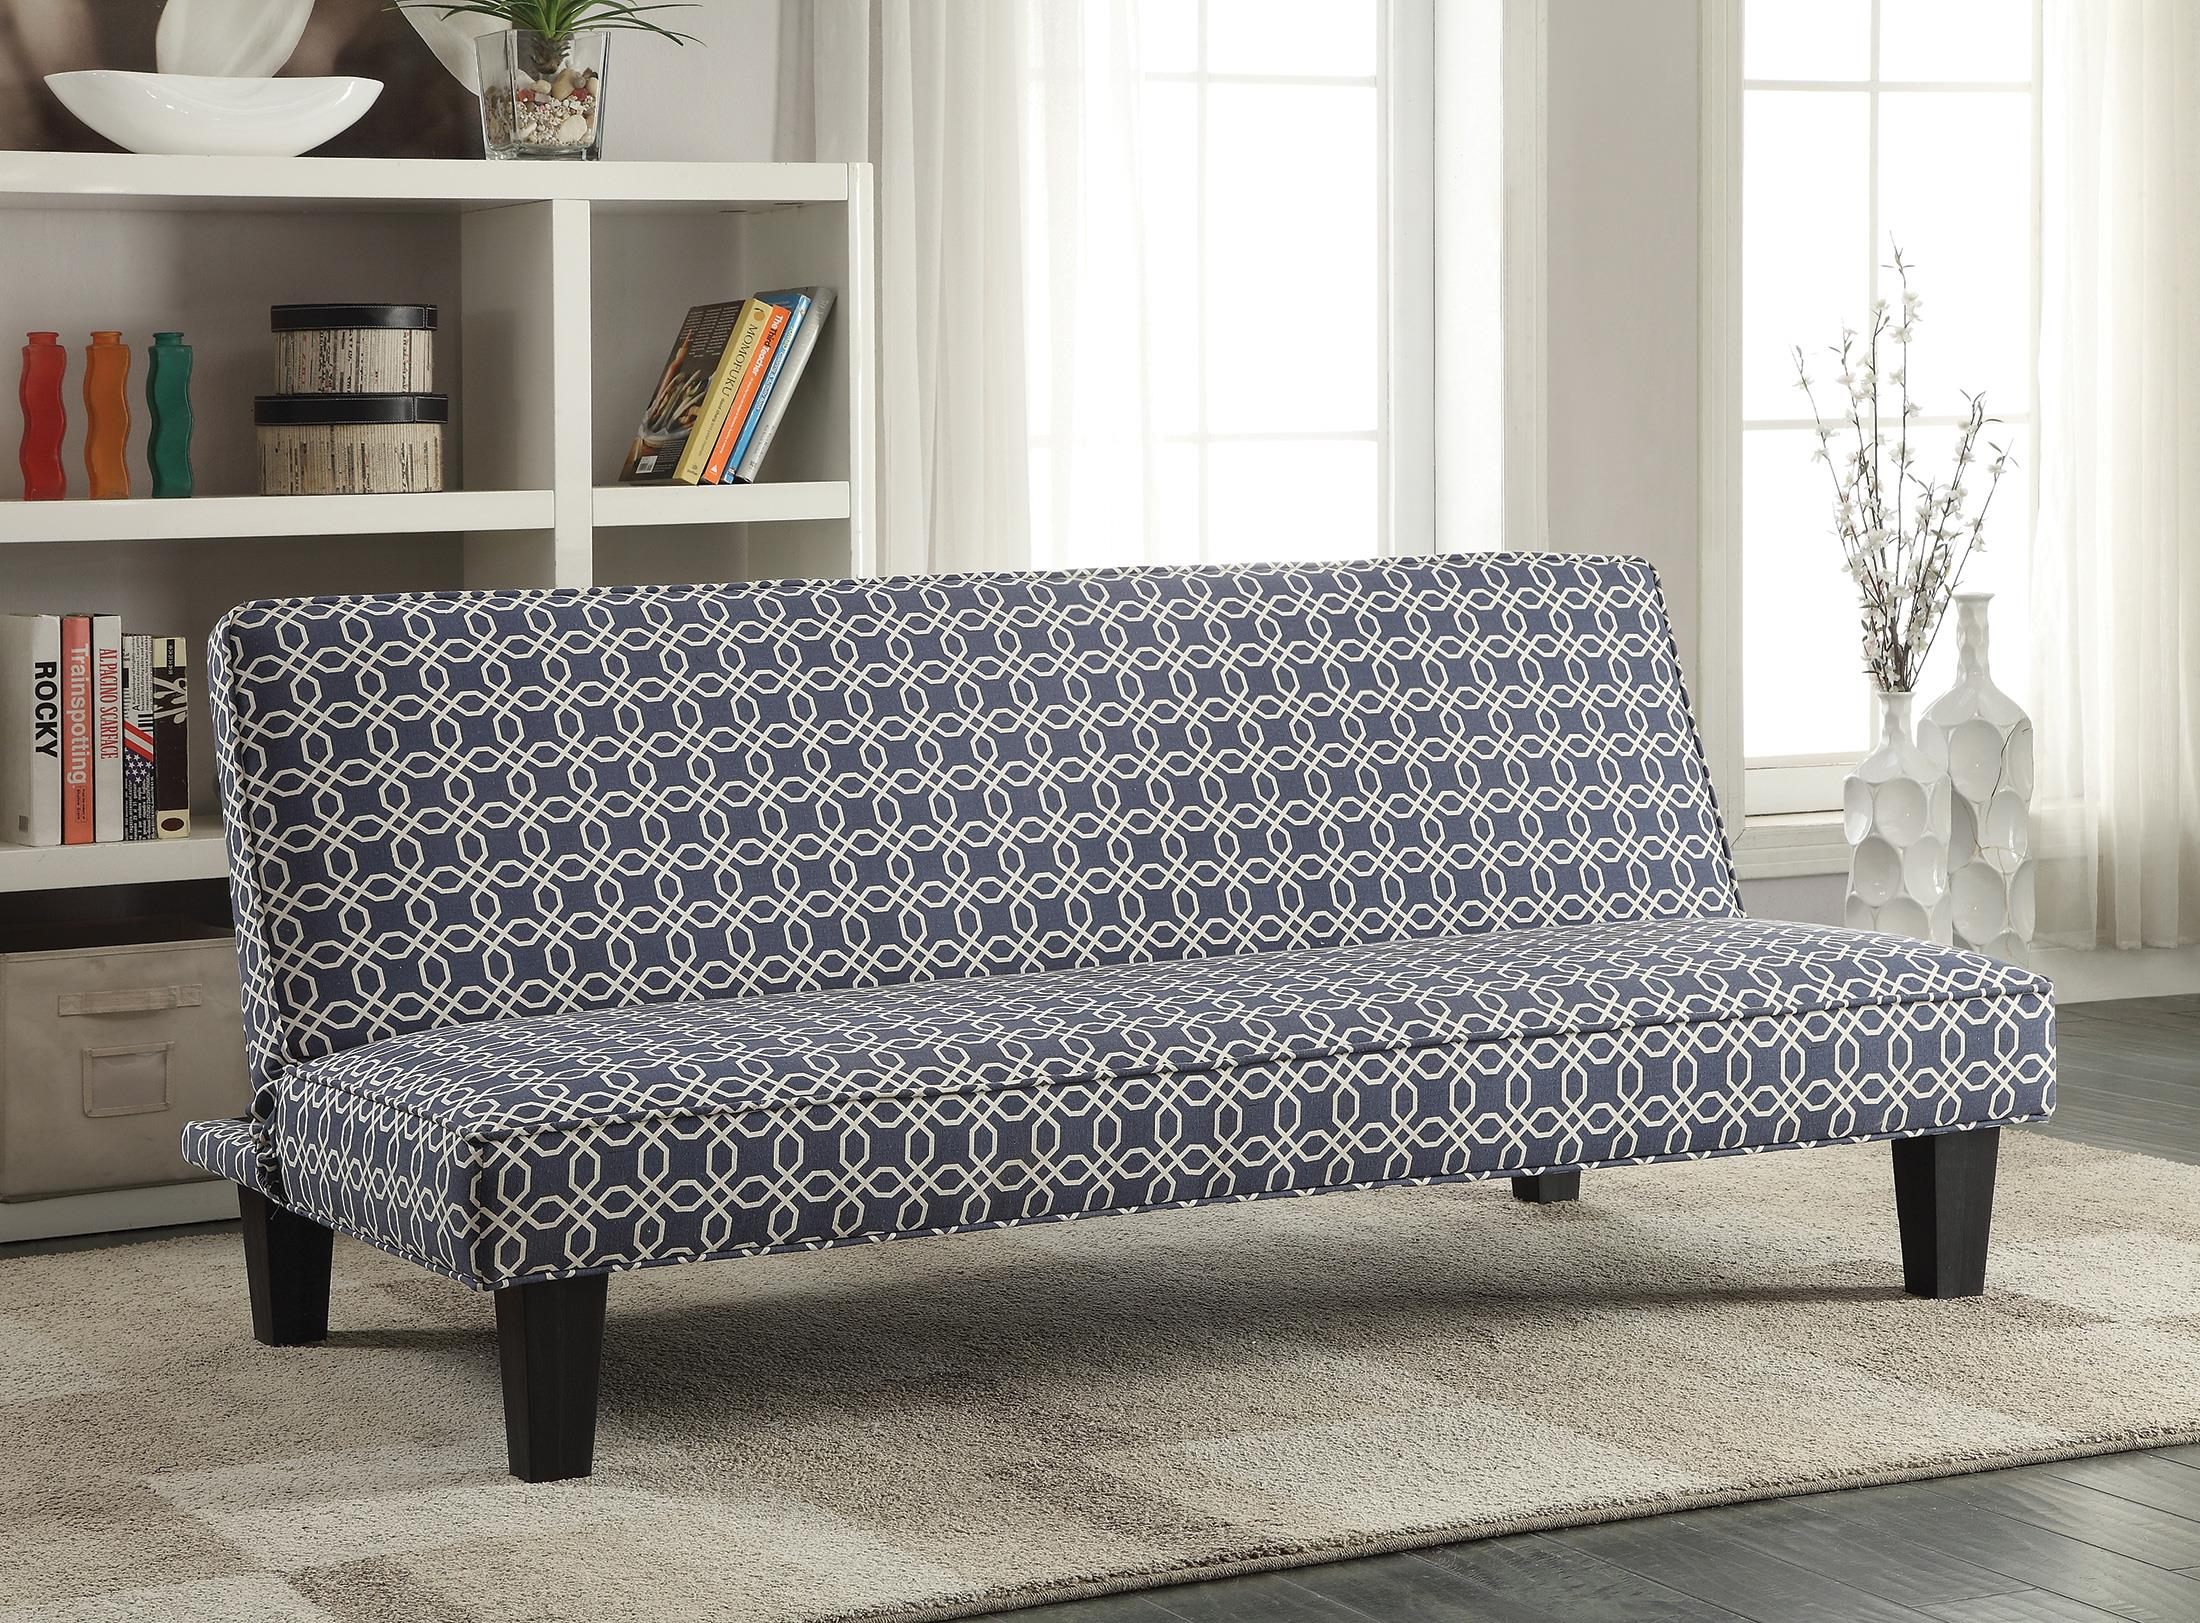 Futons Sofa Bed With Trellis Pattern Fabric Quality